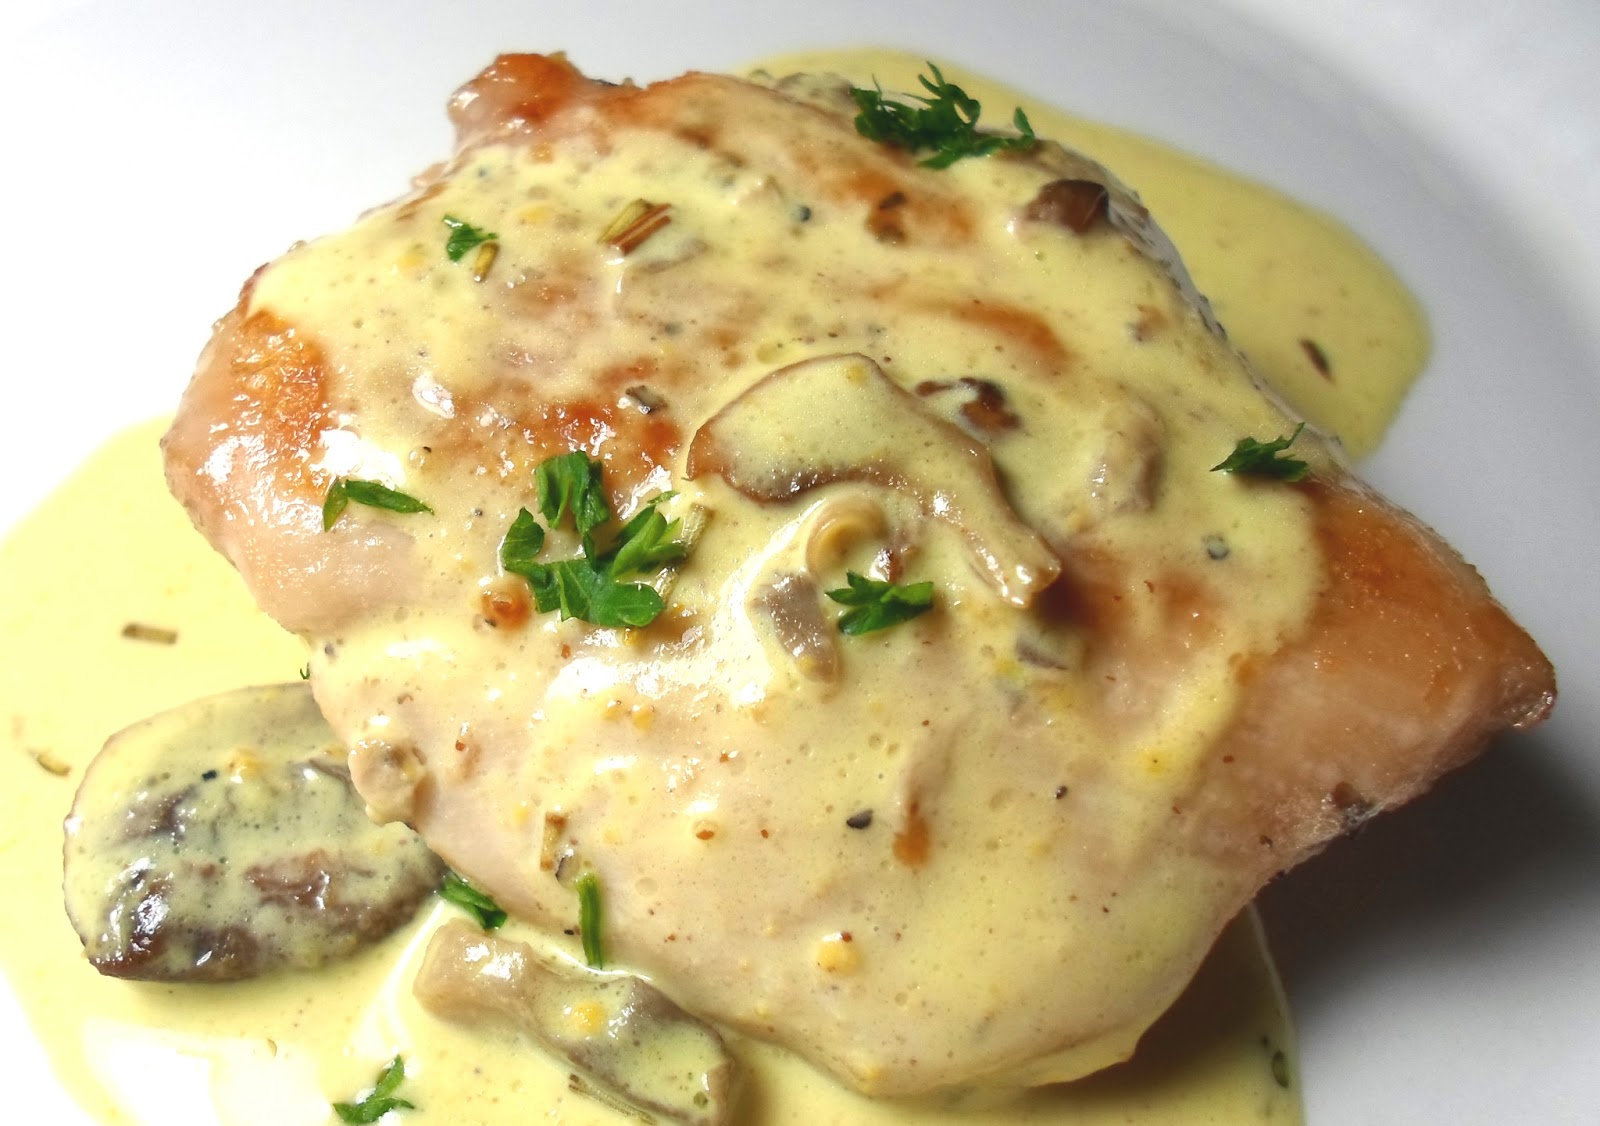 Show #136 Sauteed Chicken with Mushroom Cream Sauce